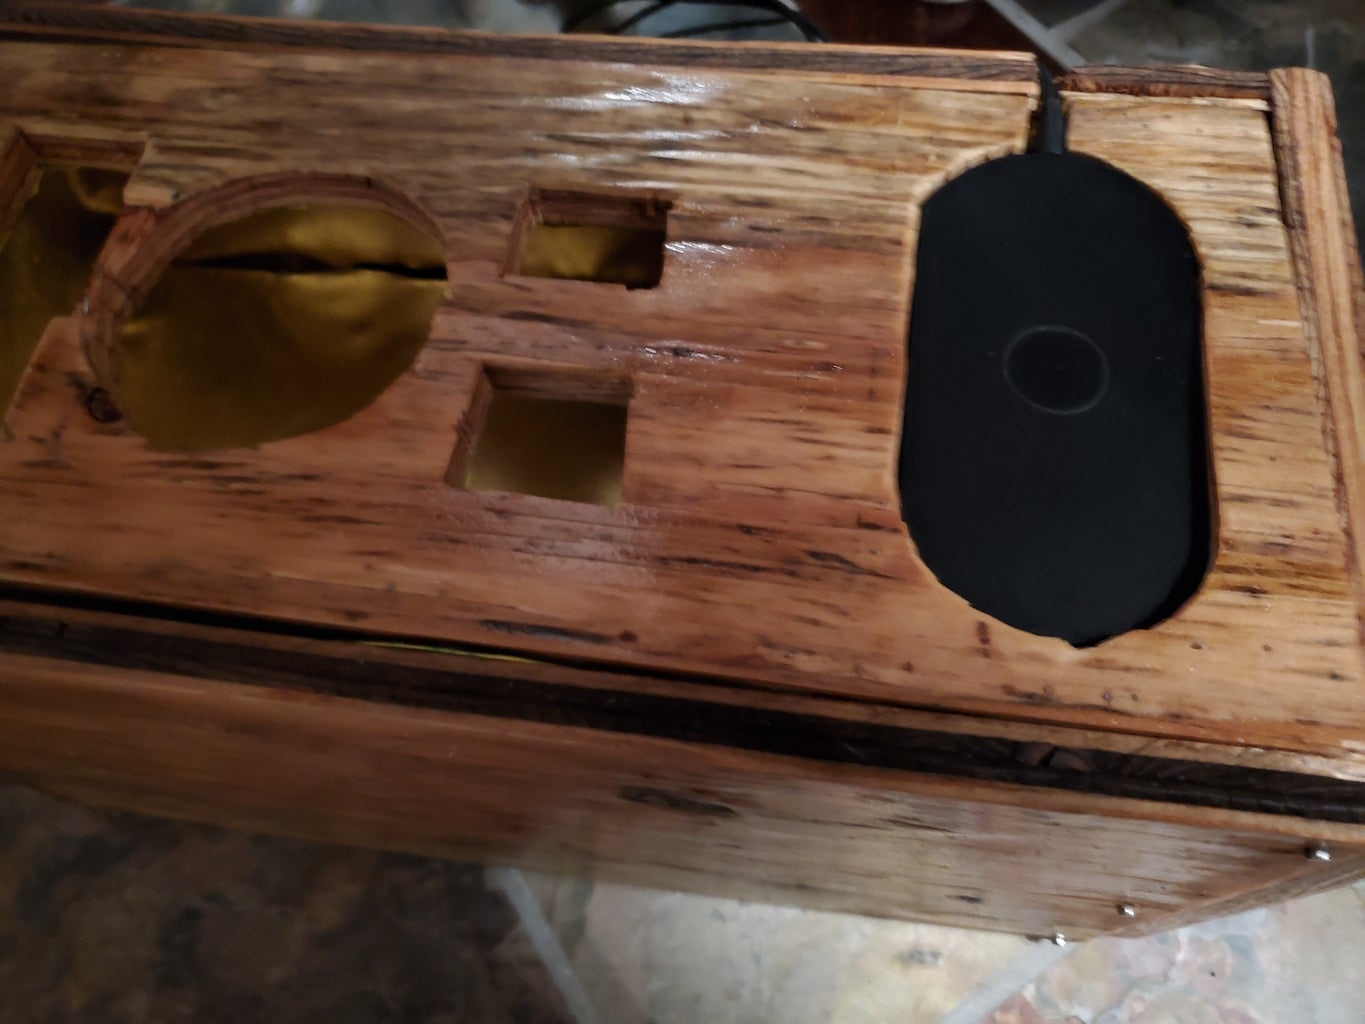 Adding the Wireless Charger